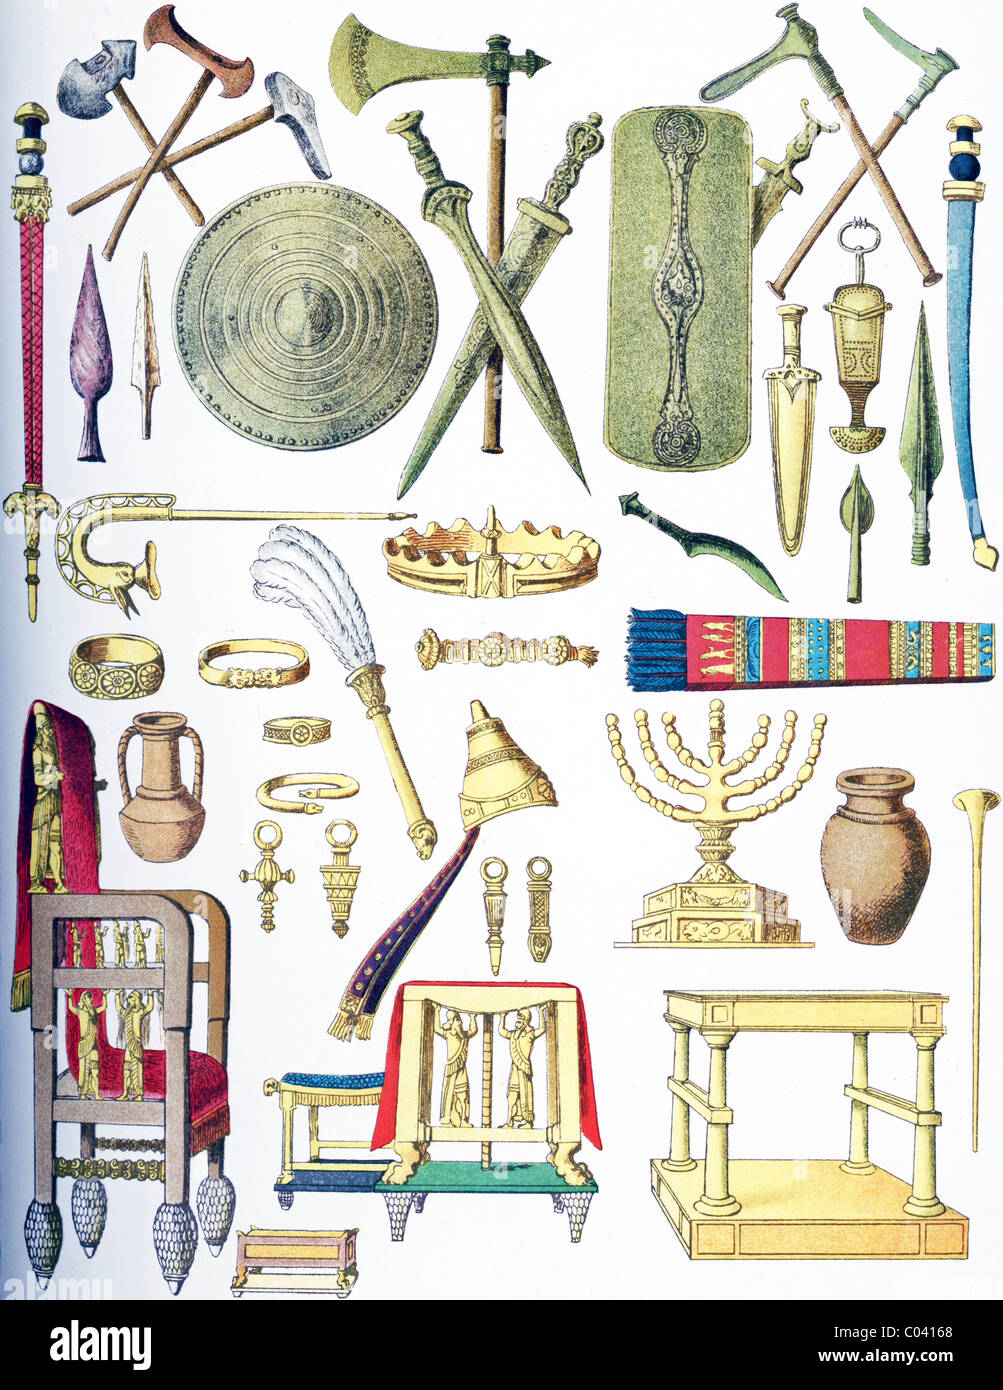 The objects pictured are from ancient times: European, Sarmatian, Assyrian, and Jewish. - Stock Image